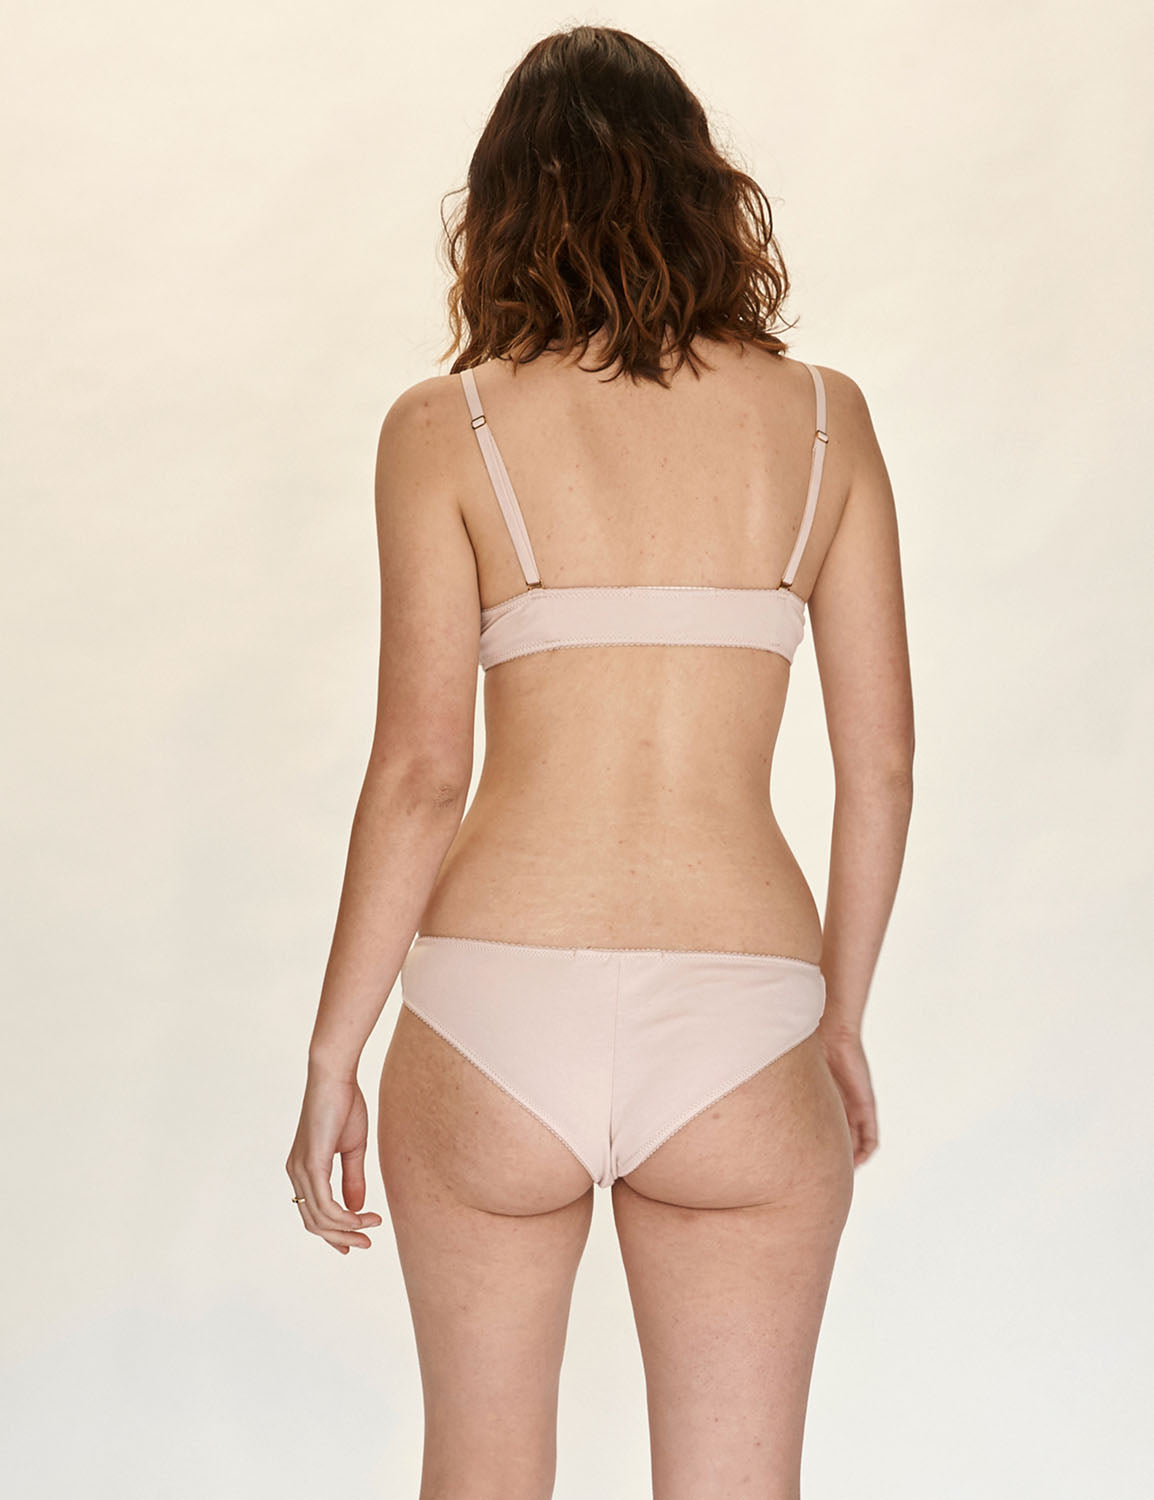 Cheeky Undies - Rose